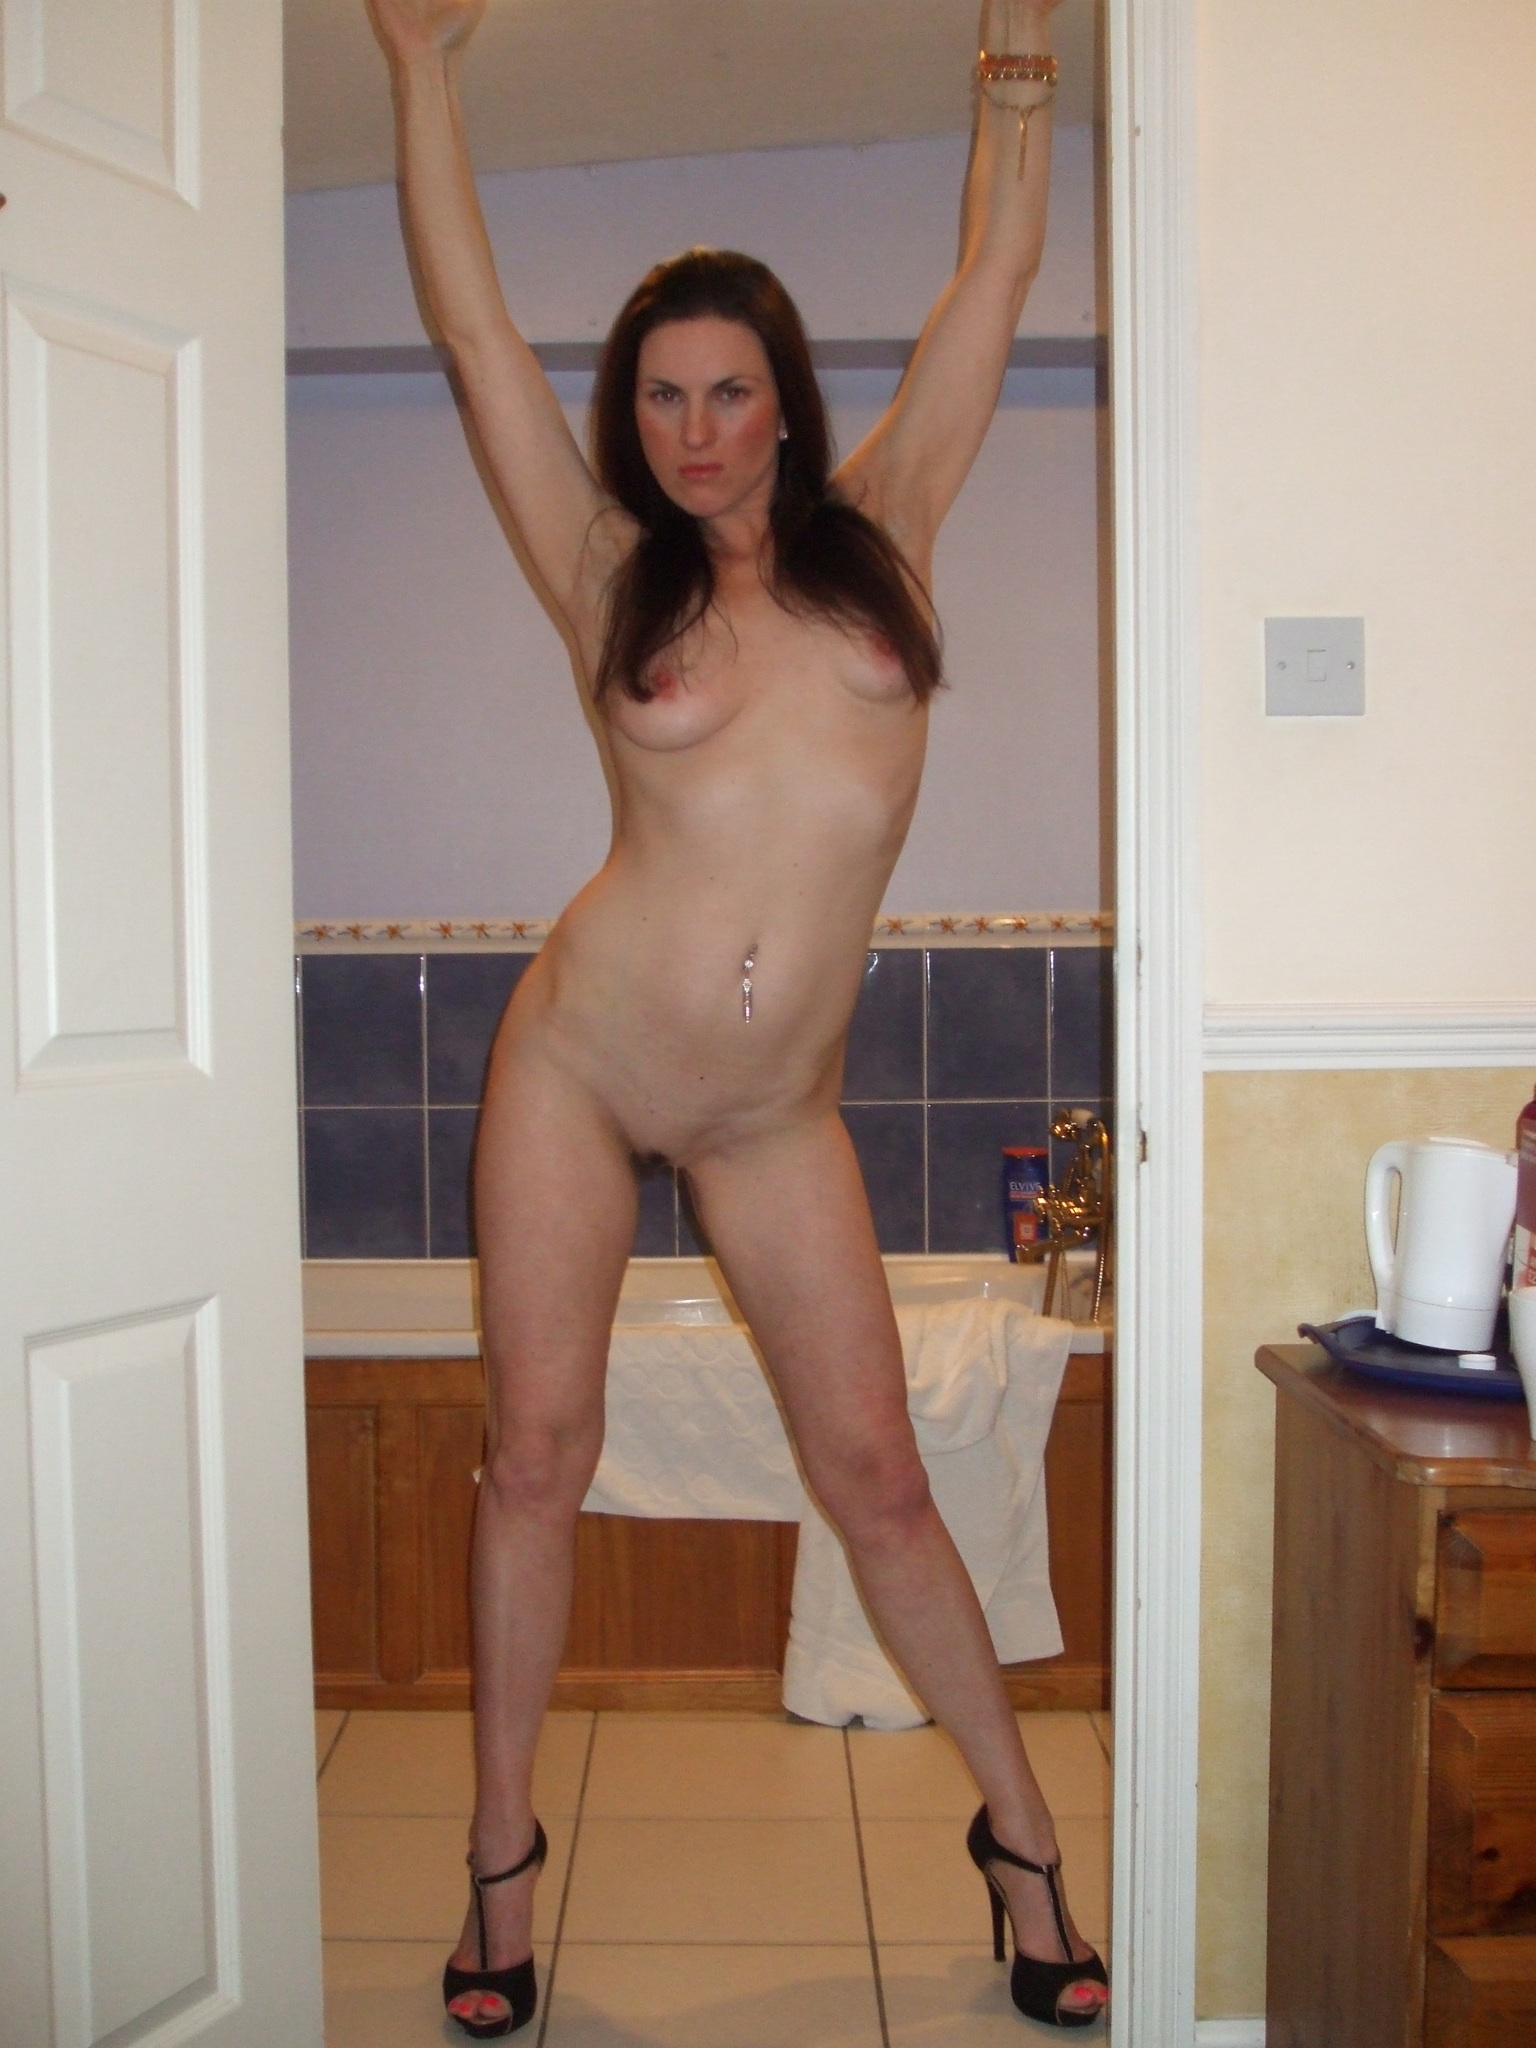 solo mature webcam free videos watch download and enjoy